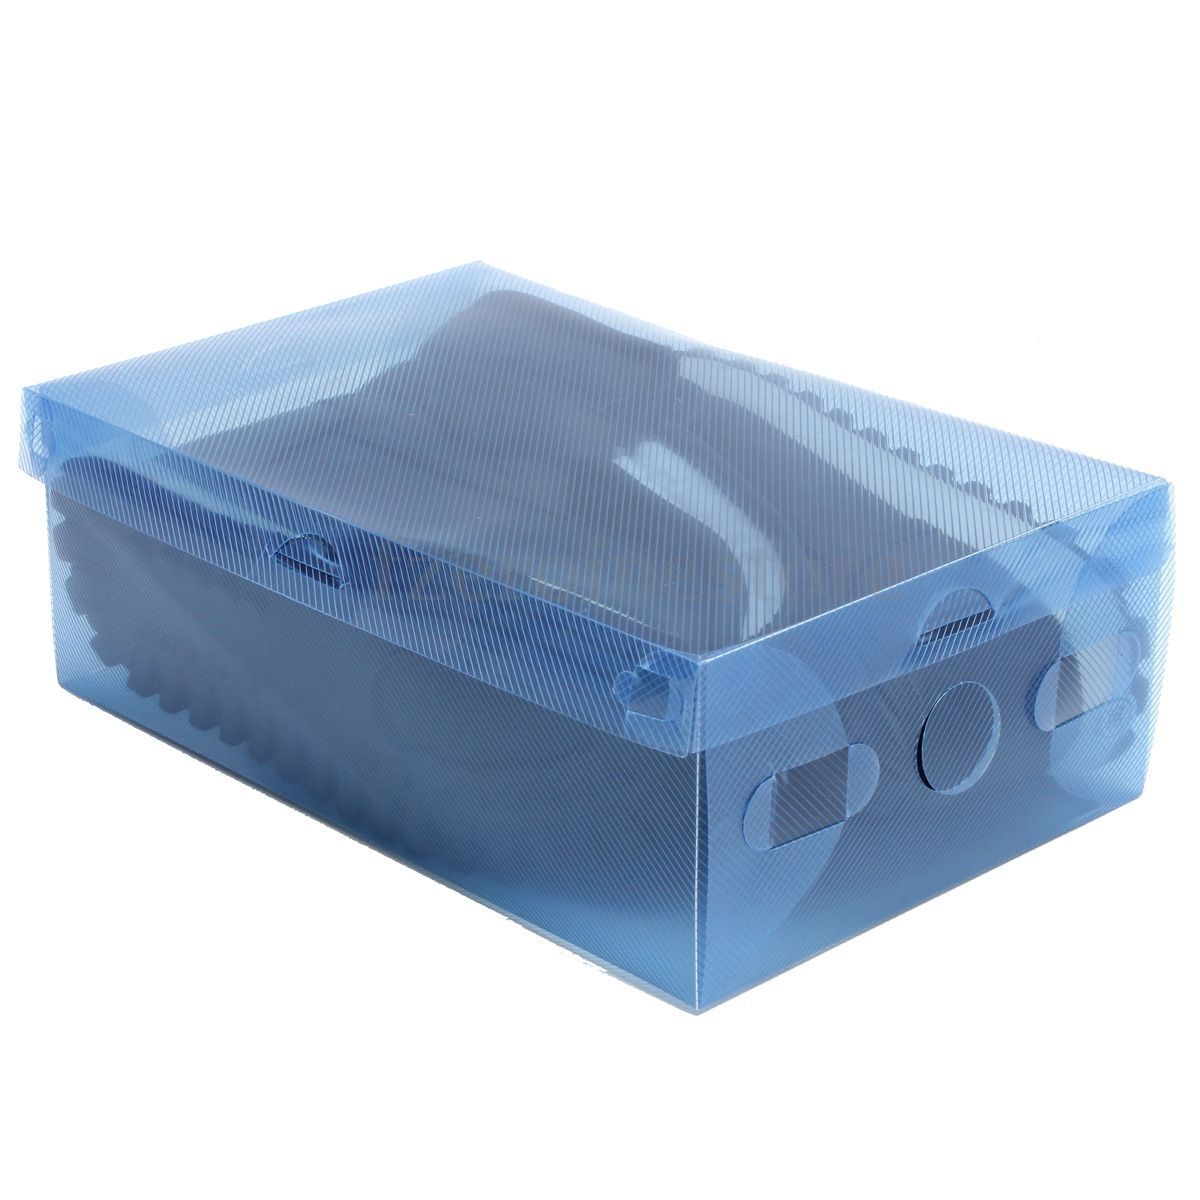 Plastic shoes box clear diy stackable holder colorful for Diy shoe storage with cardboard